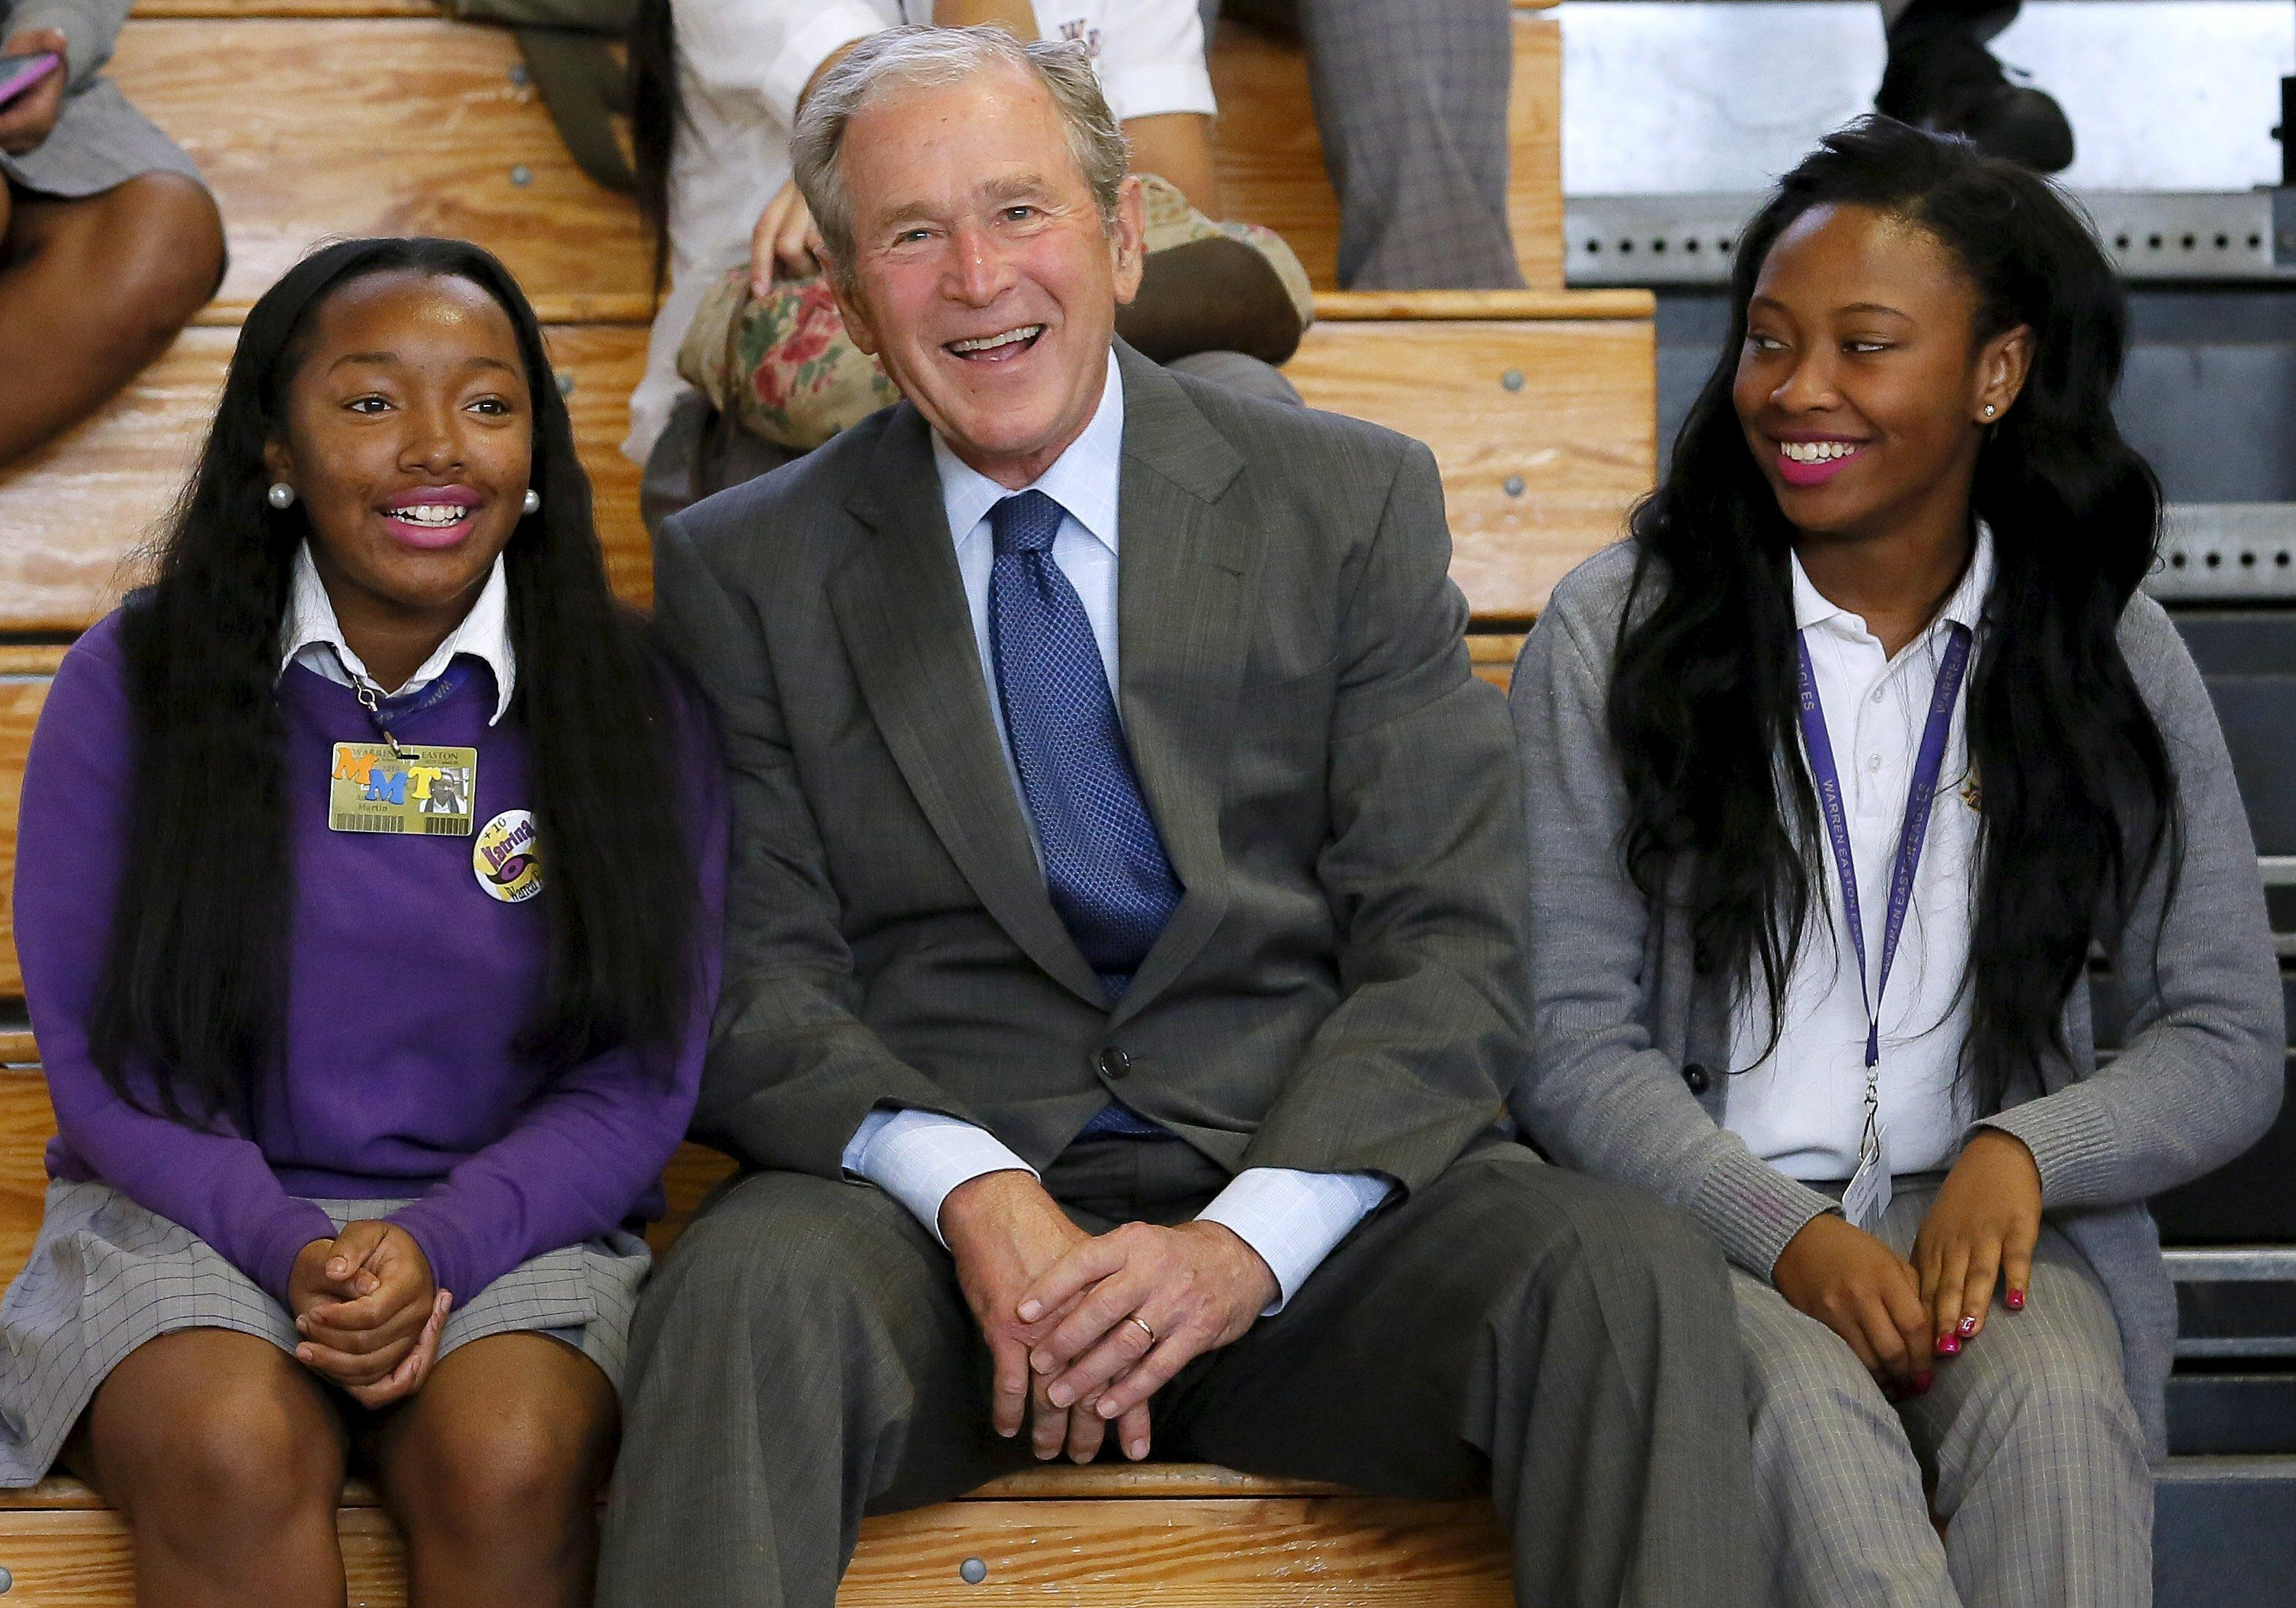 George W. Bush visits disaster zone, 10 years after Katrina